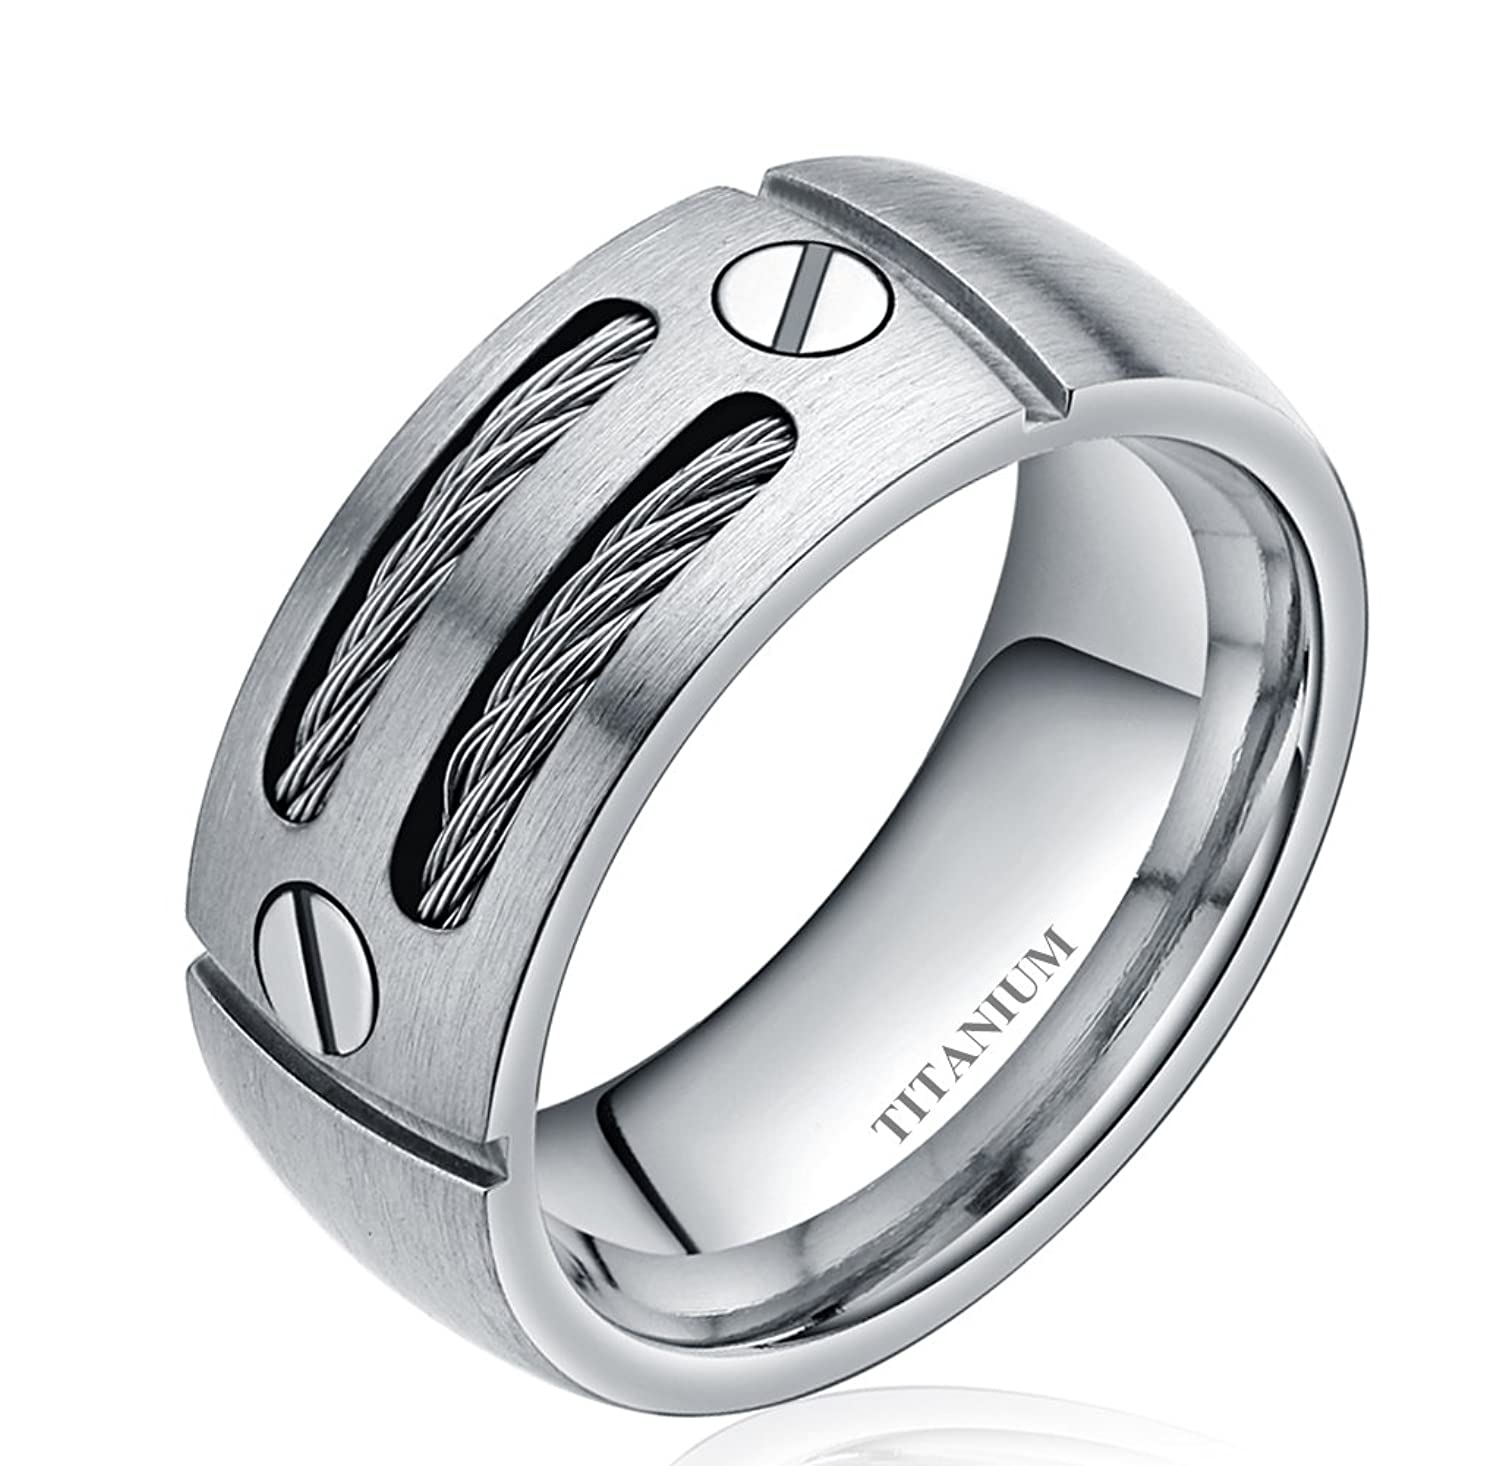 8mm Men s Silver black Cable Inlay Titanium Ring Wedding Band